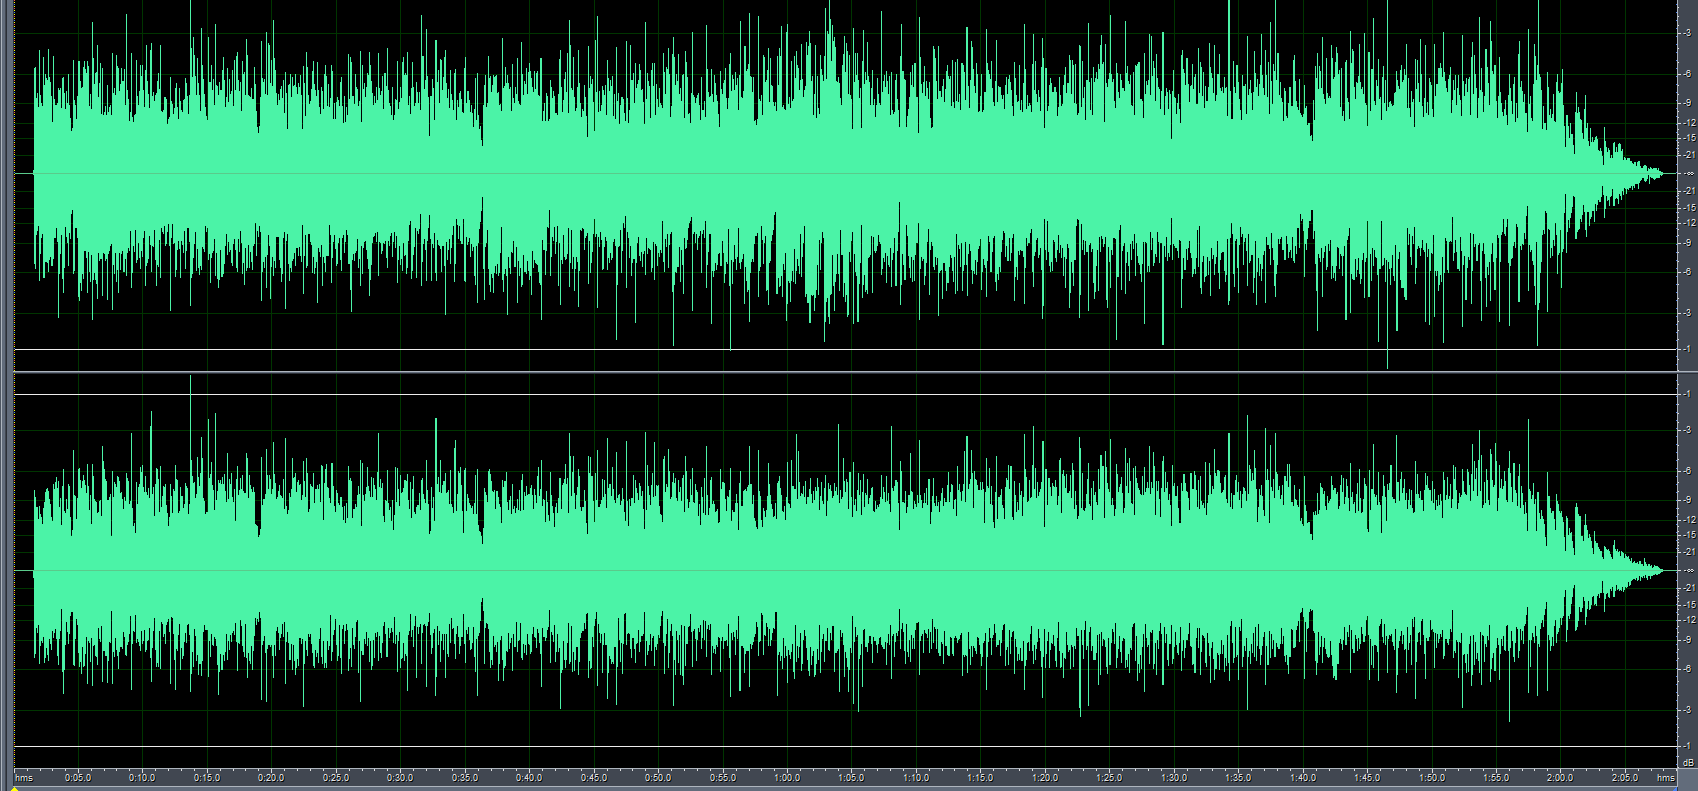 wave-normalized-0-1db.png